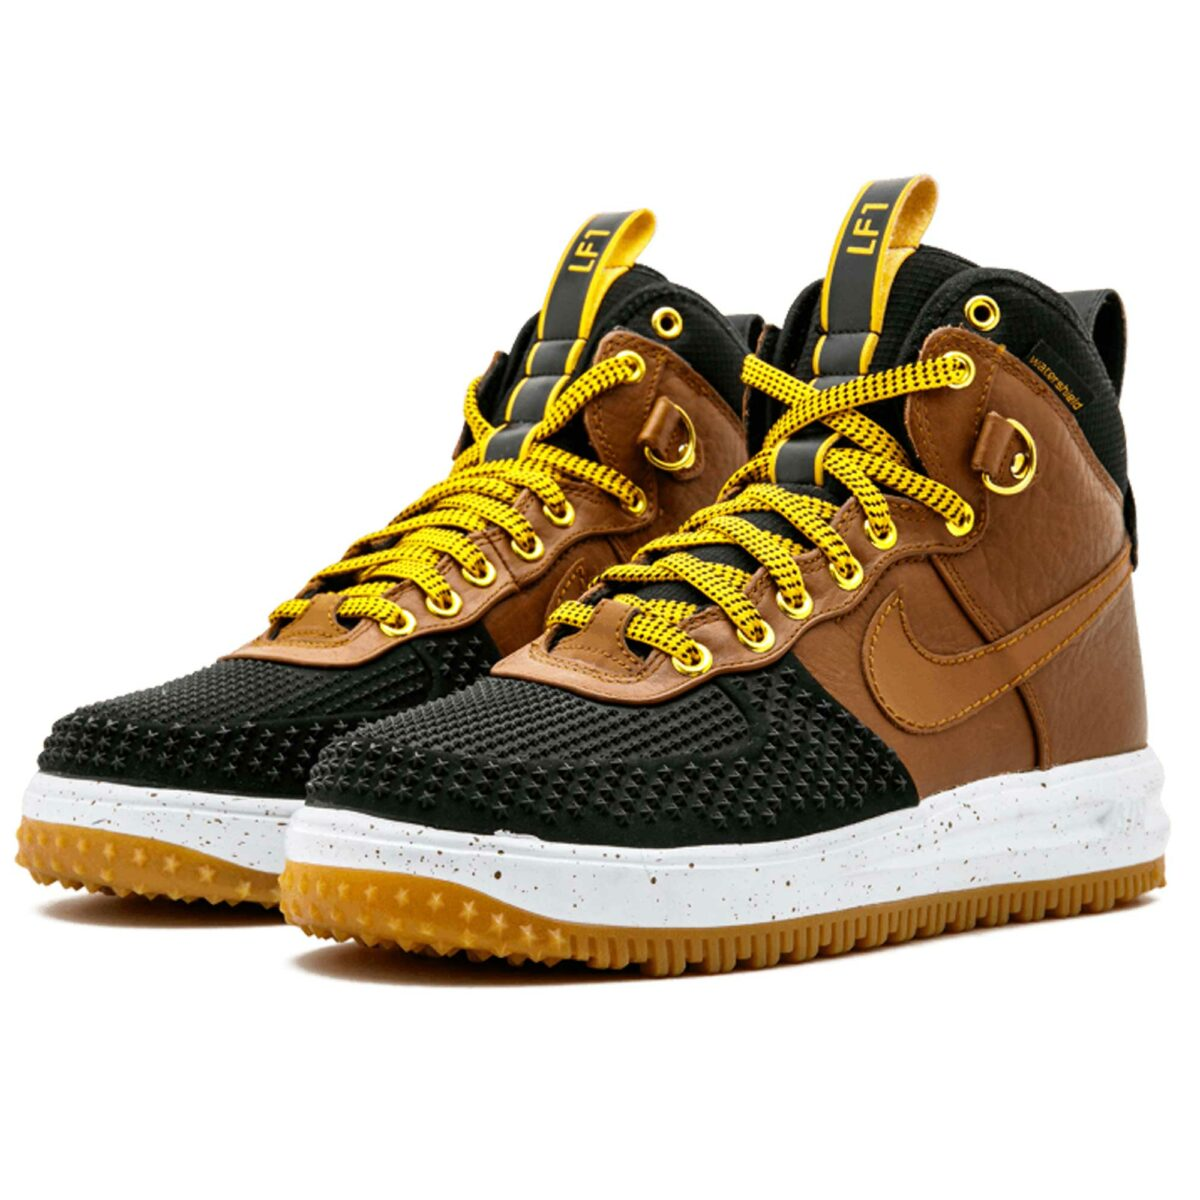 nike lunar force 1 duckboot 805899_004 купить